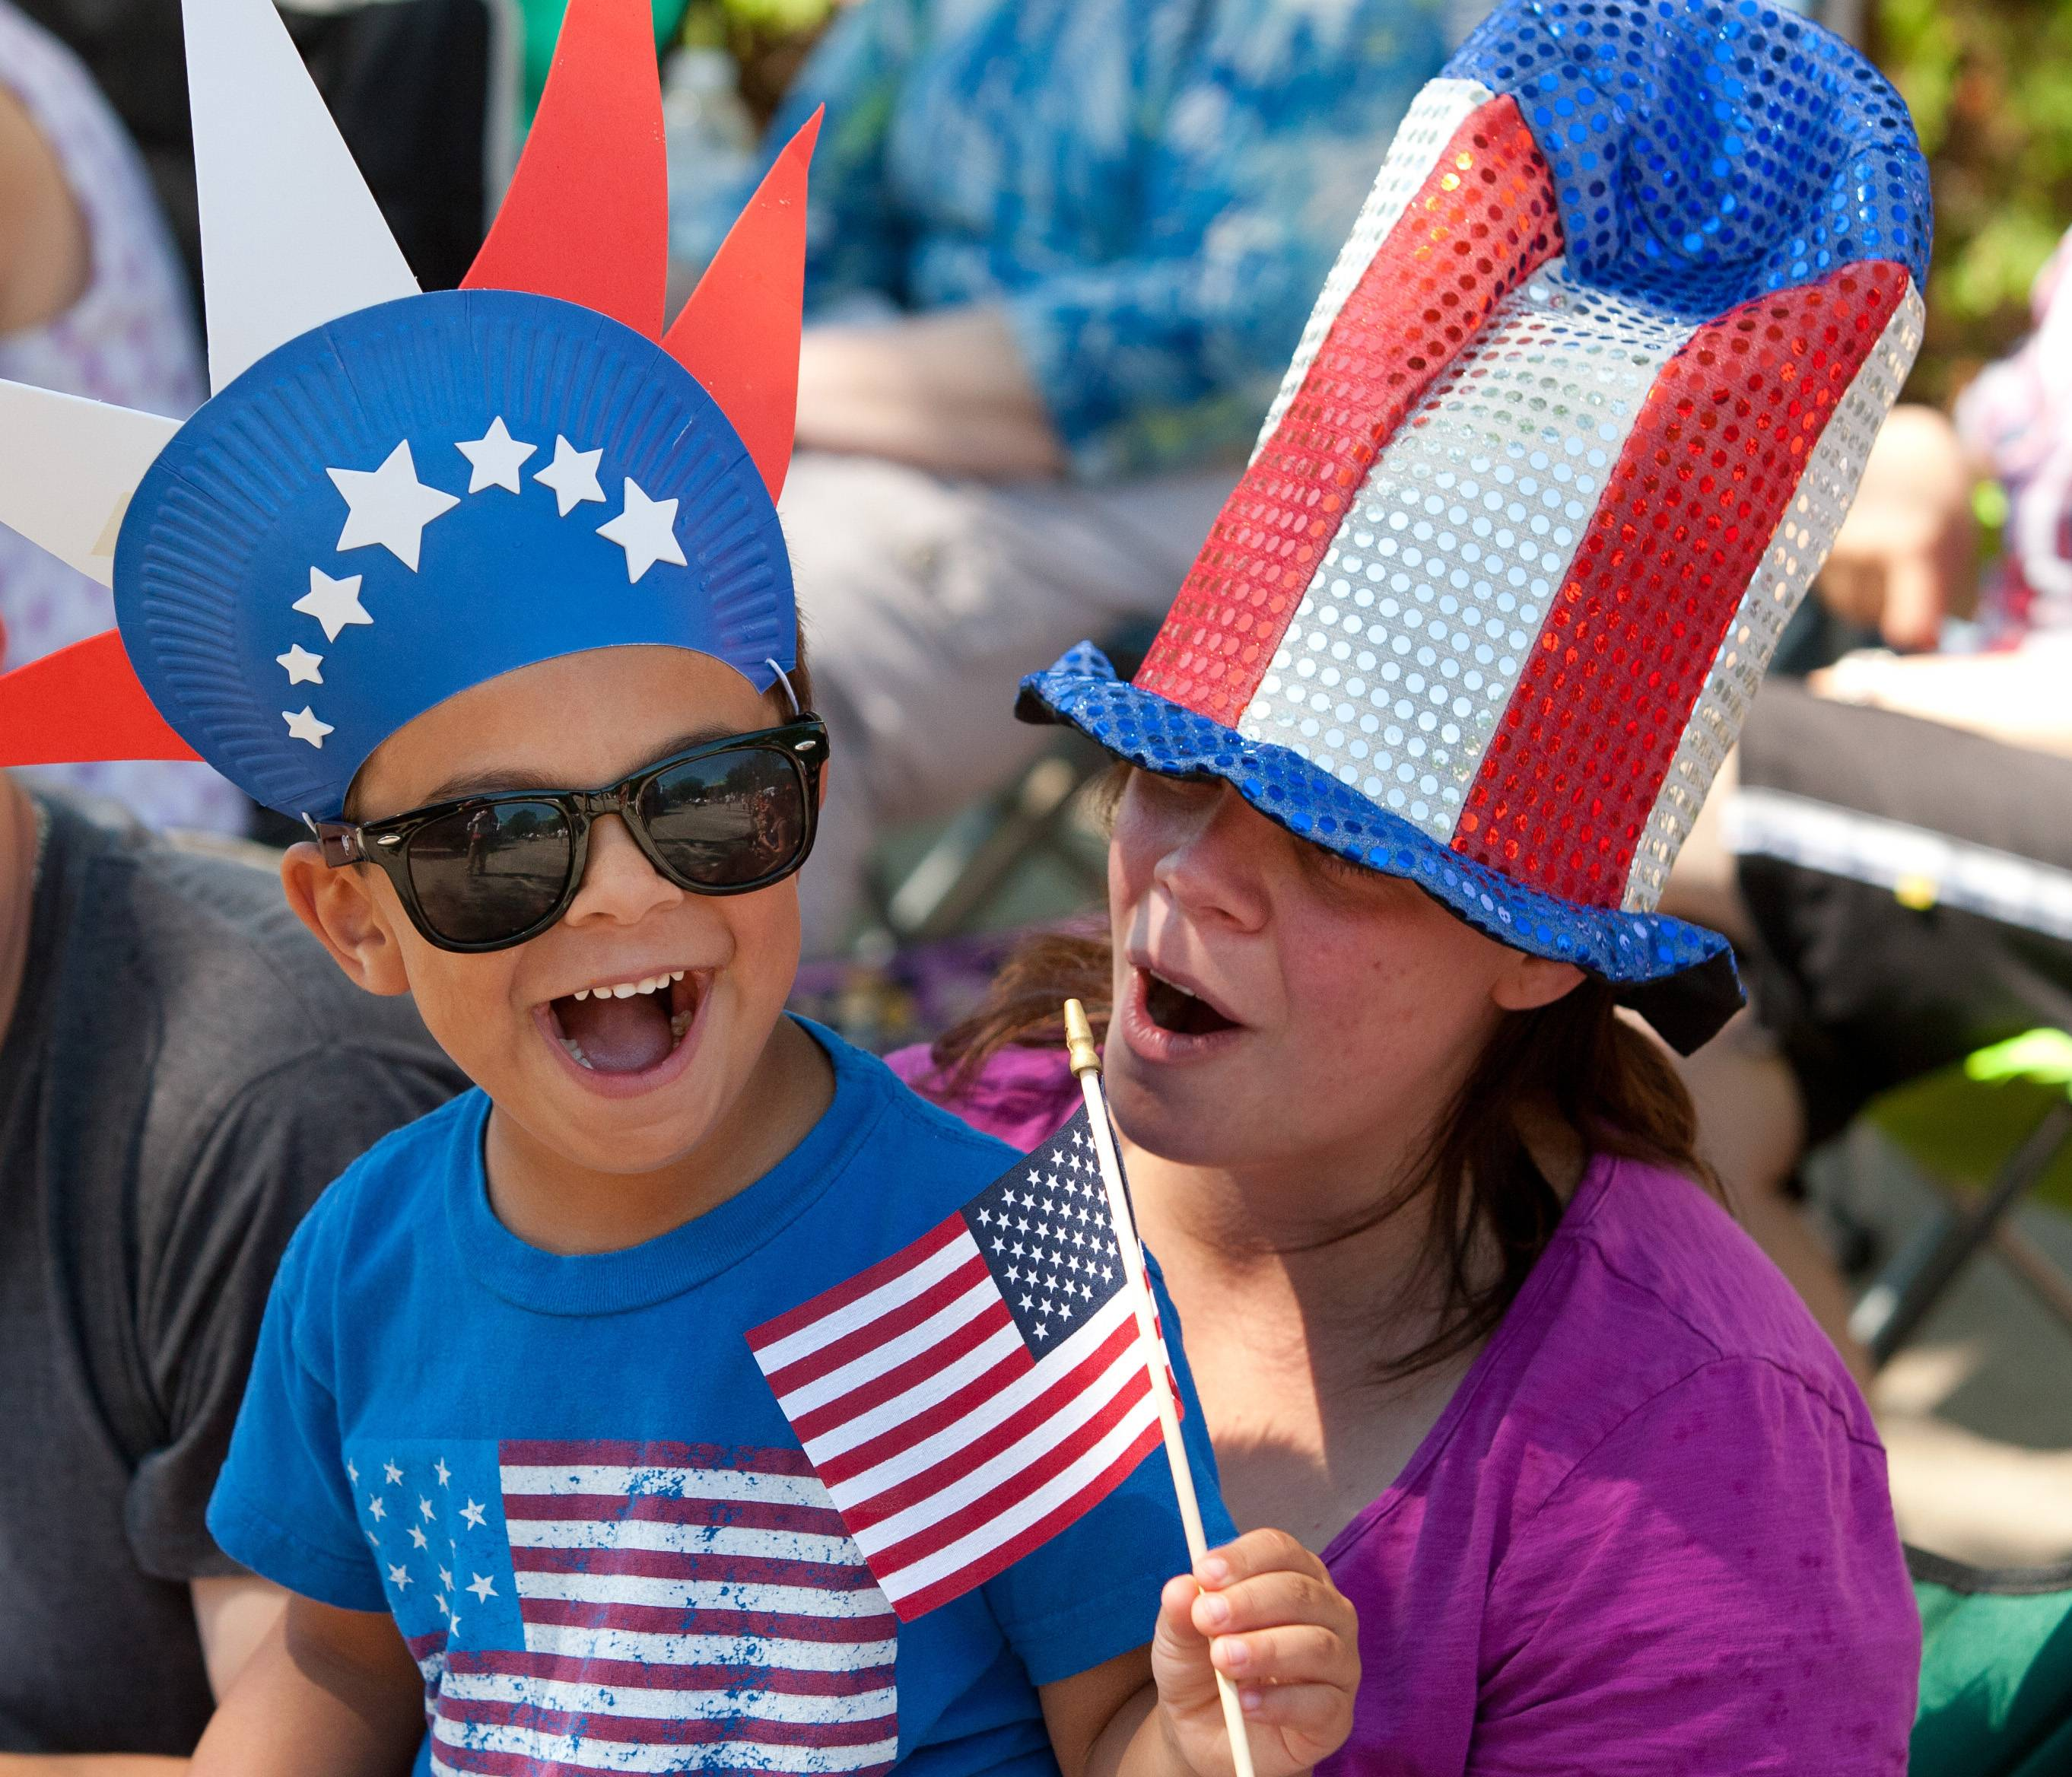 Nicholas Principe, 4, and his mother Melissa Principe of Wheaton watch Wheaton's 2014 Independence Day parade.